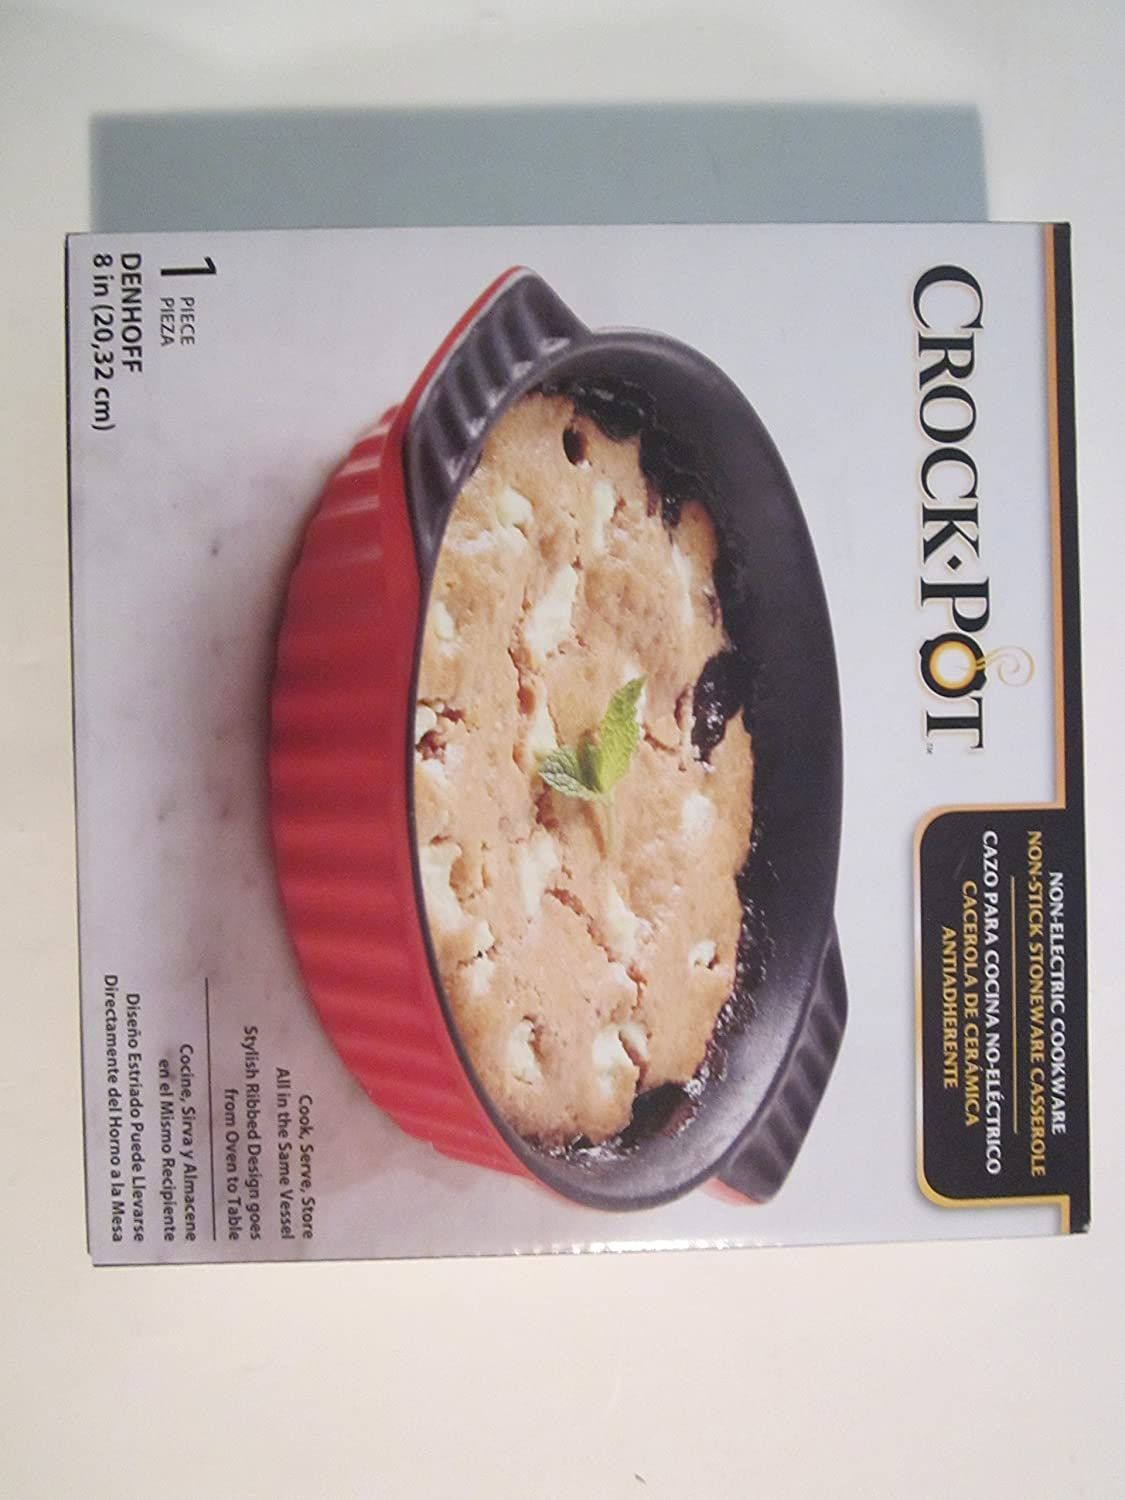 Amazon.com: Crock Pot Non-Electric Cookware Non-Stick Stoneware Casserole Round: Kitchen & Dining